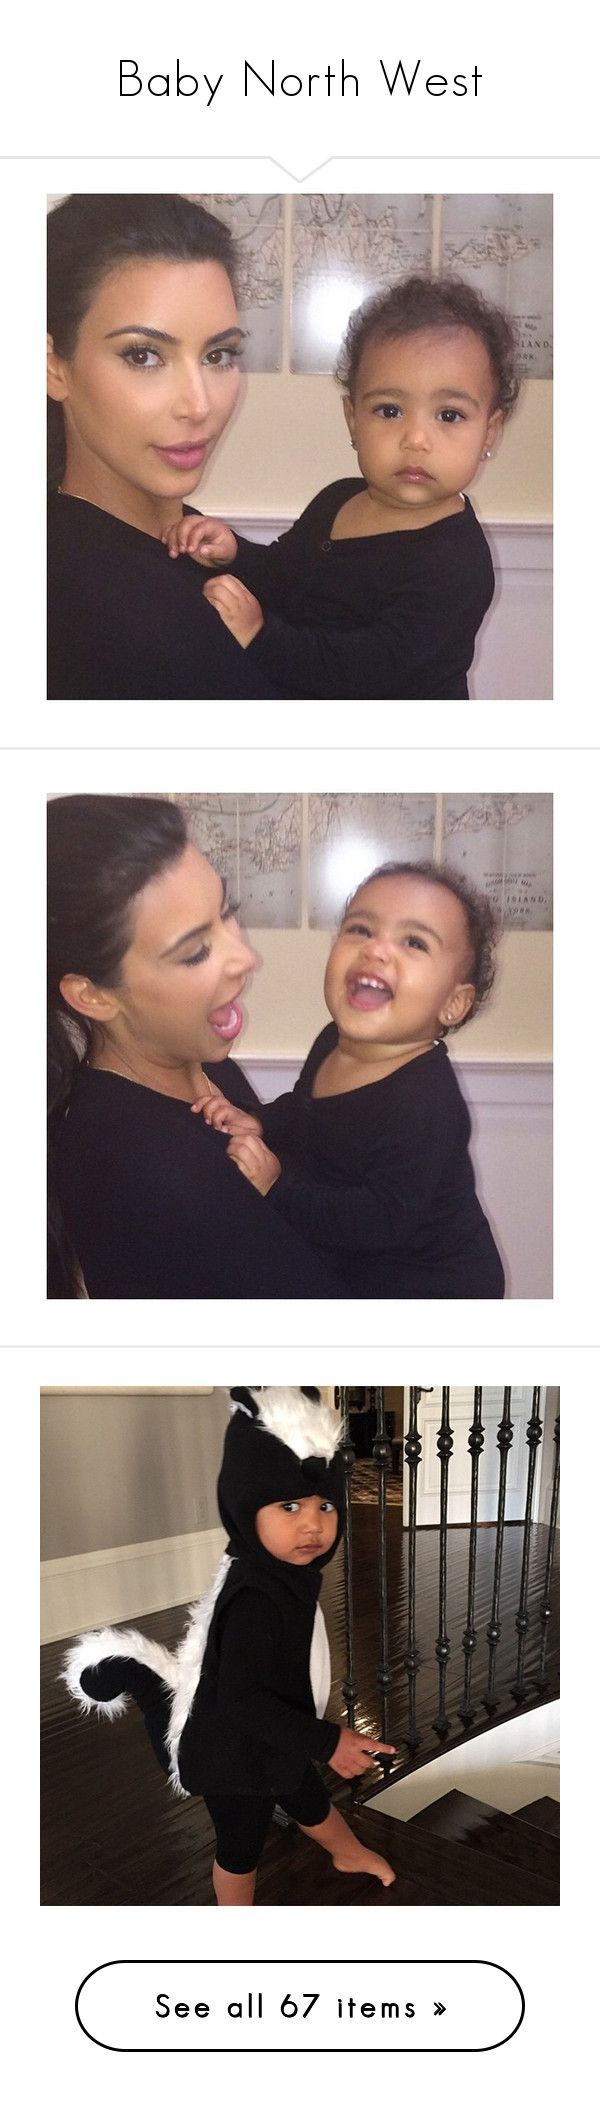 """Baby North West"" by kinkykaloni ❤ liked on Polyvore featuring north west, people, kardashian, pictures, kim kardashian, baby, black, family and instagram"